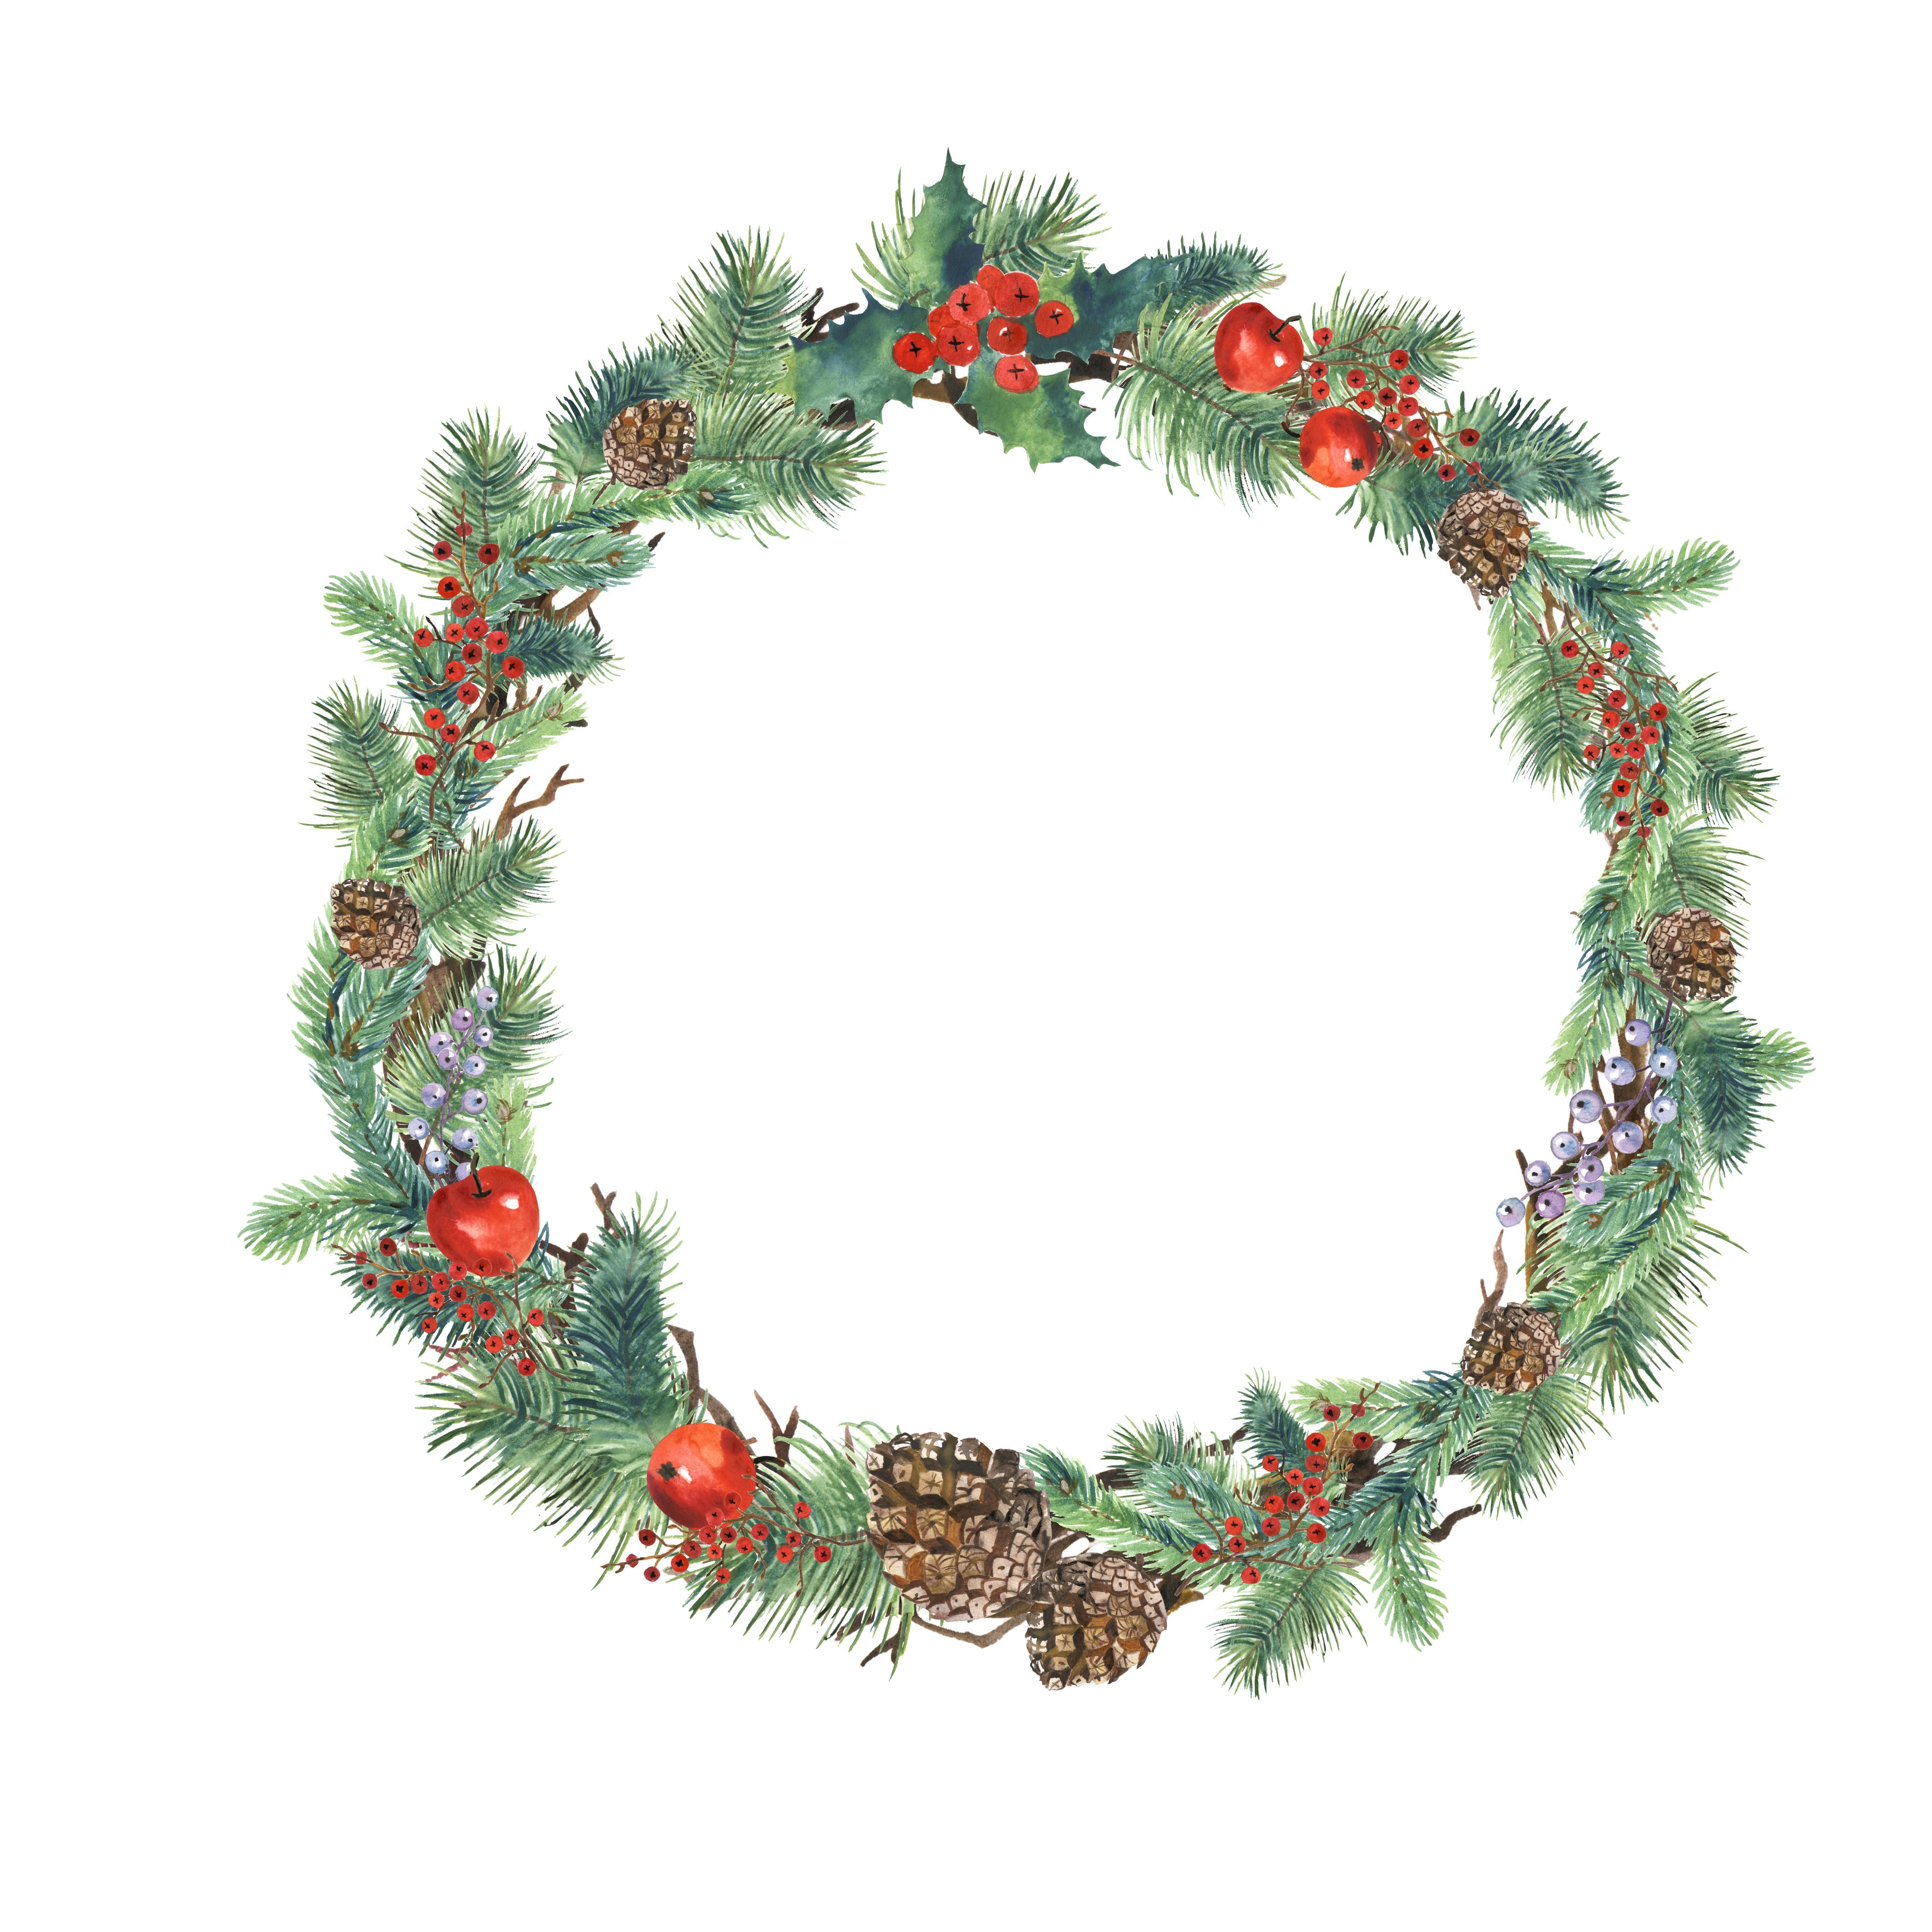 Christmas Wreaths Watercolor Set Png Isolated For Printing Images Scrapbooking Clipart Christmas Wreaths Christmas Boarders Christmas Wreath Clipart